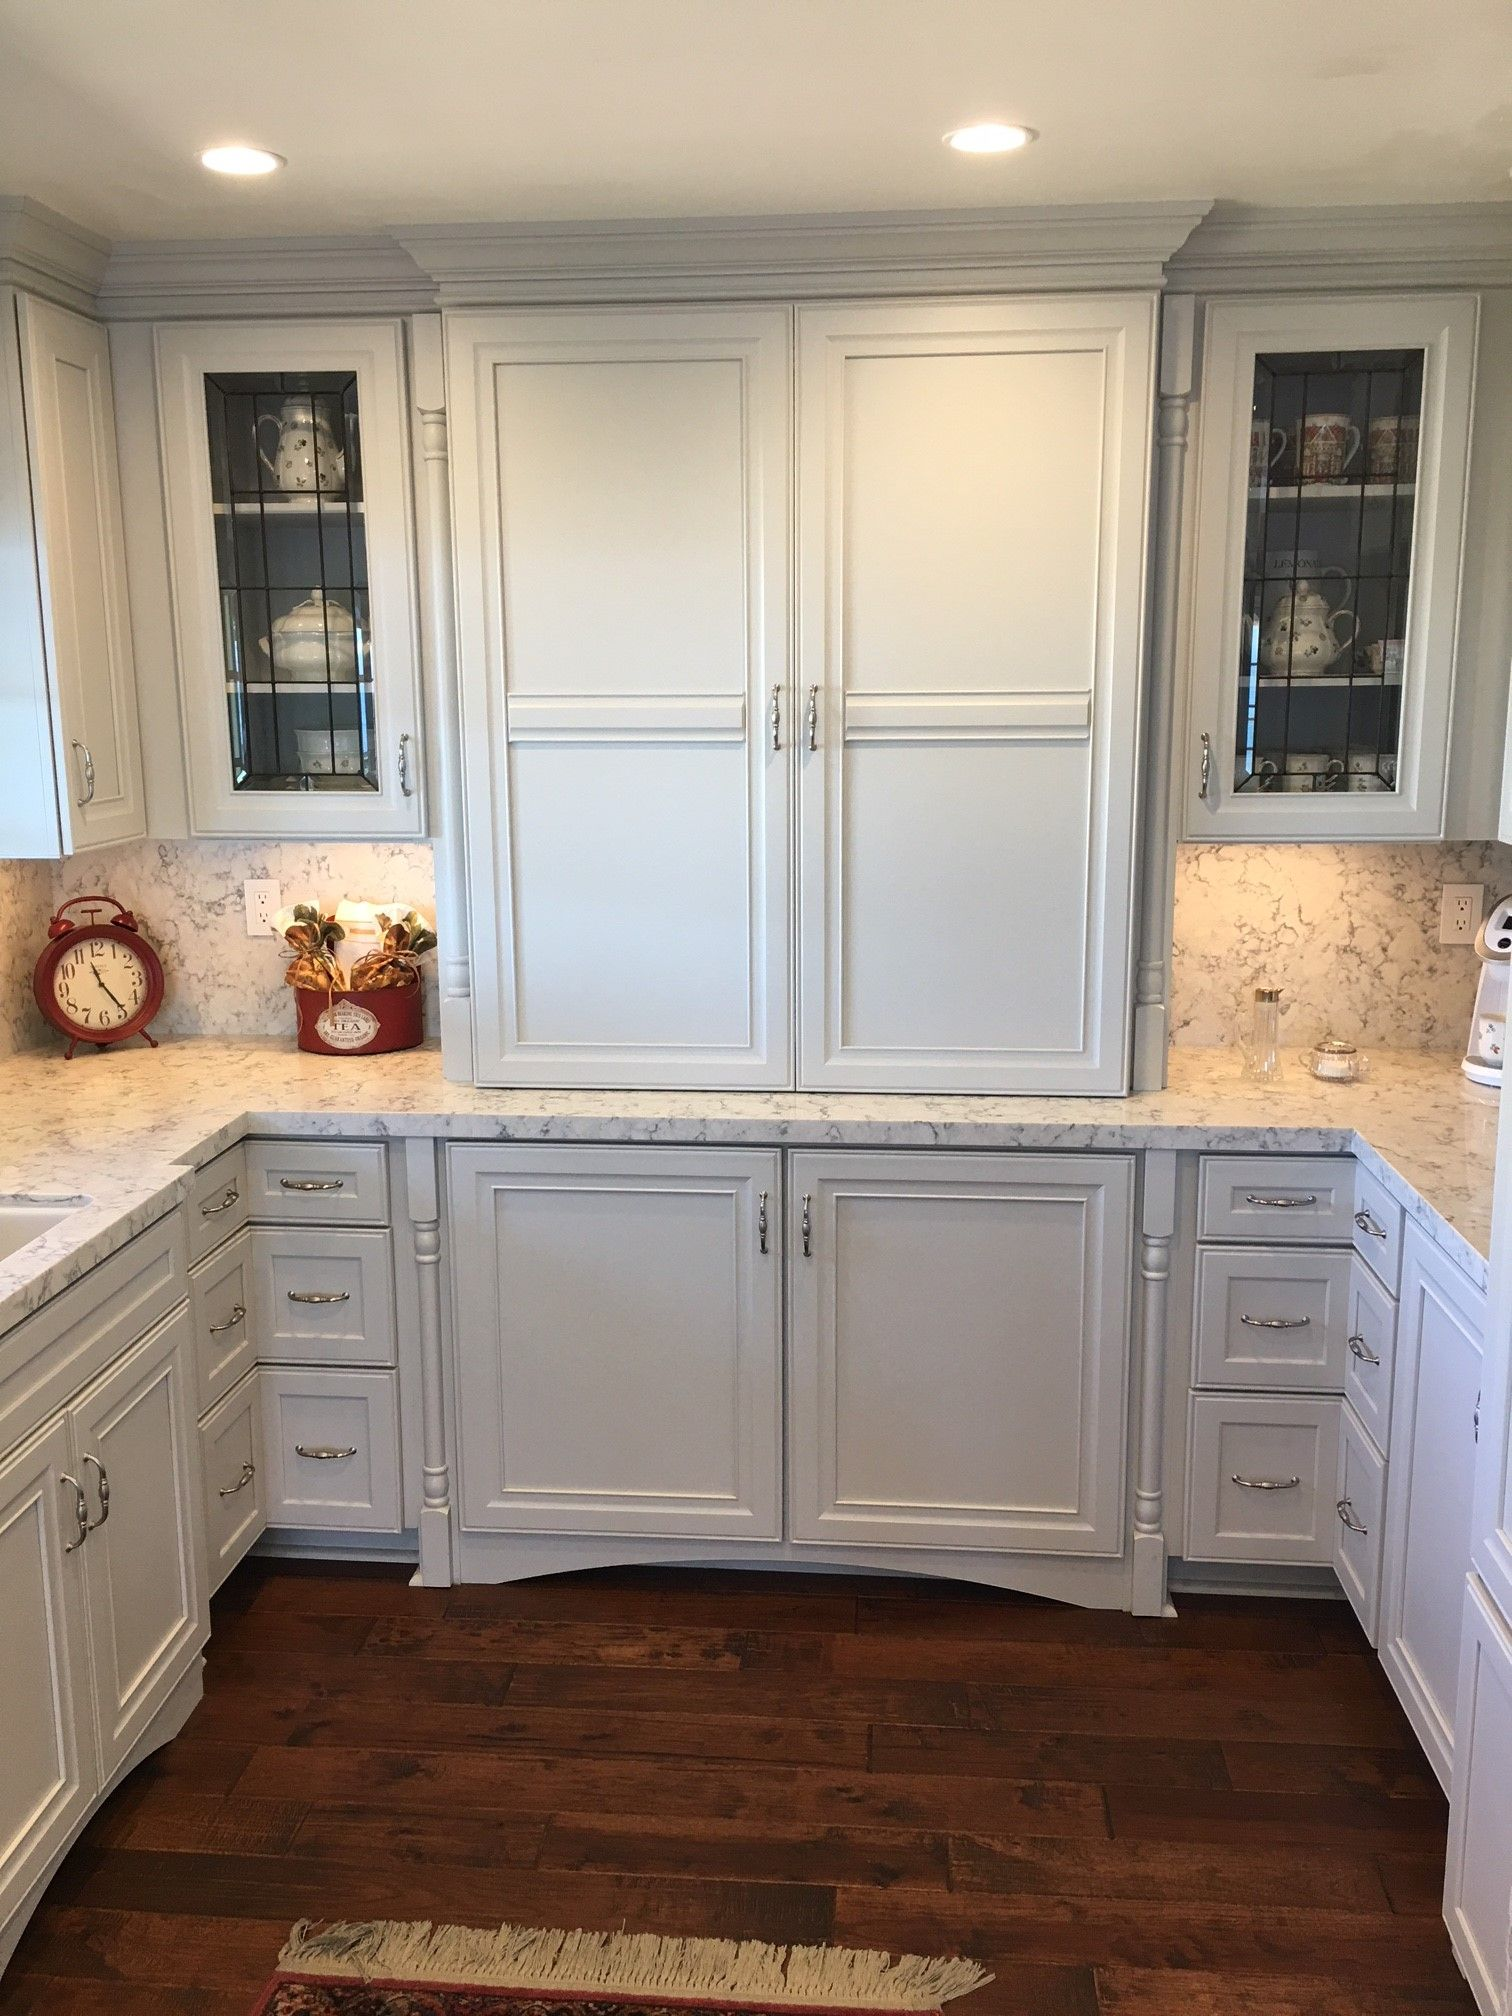 White Cabinets Are Paired With Warm Wood Floors And Granite